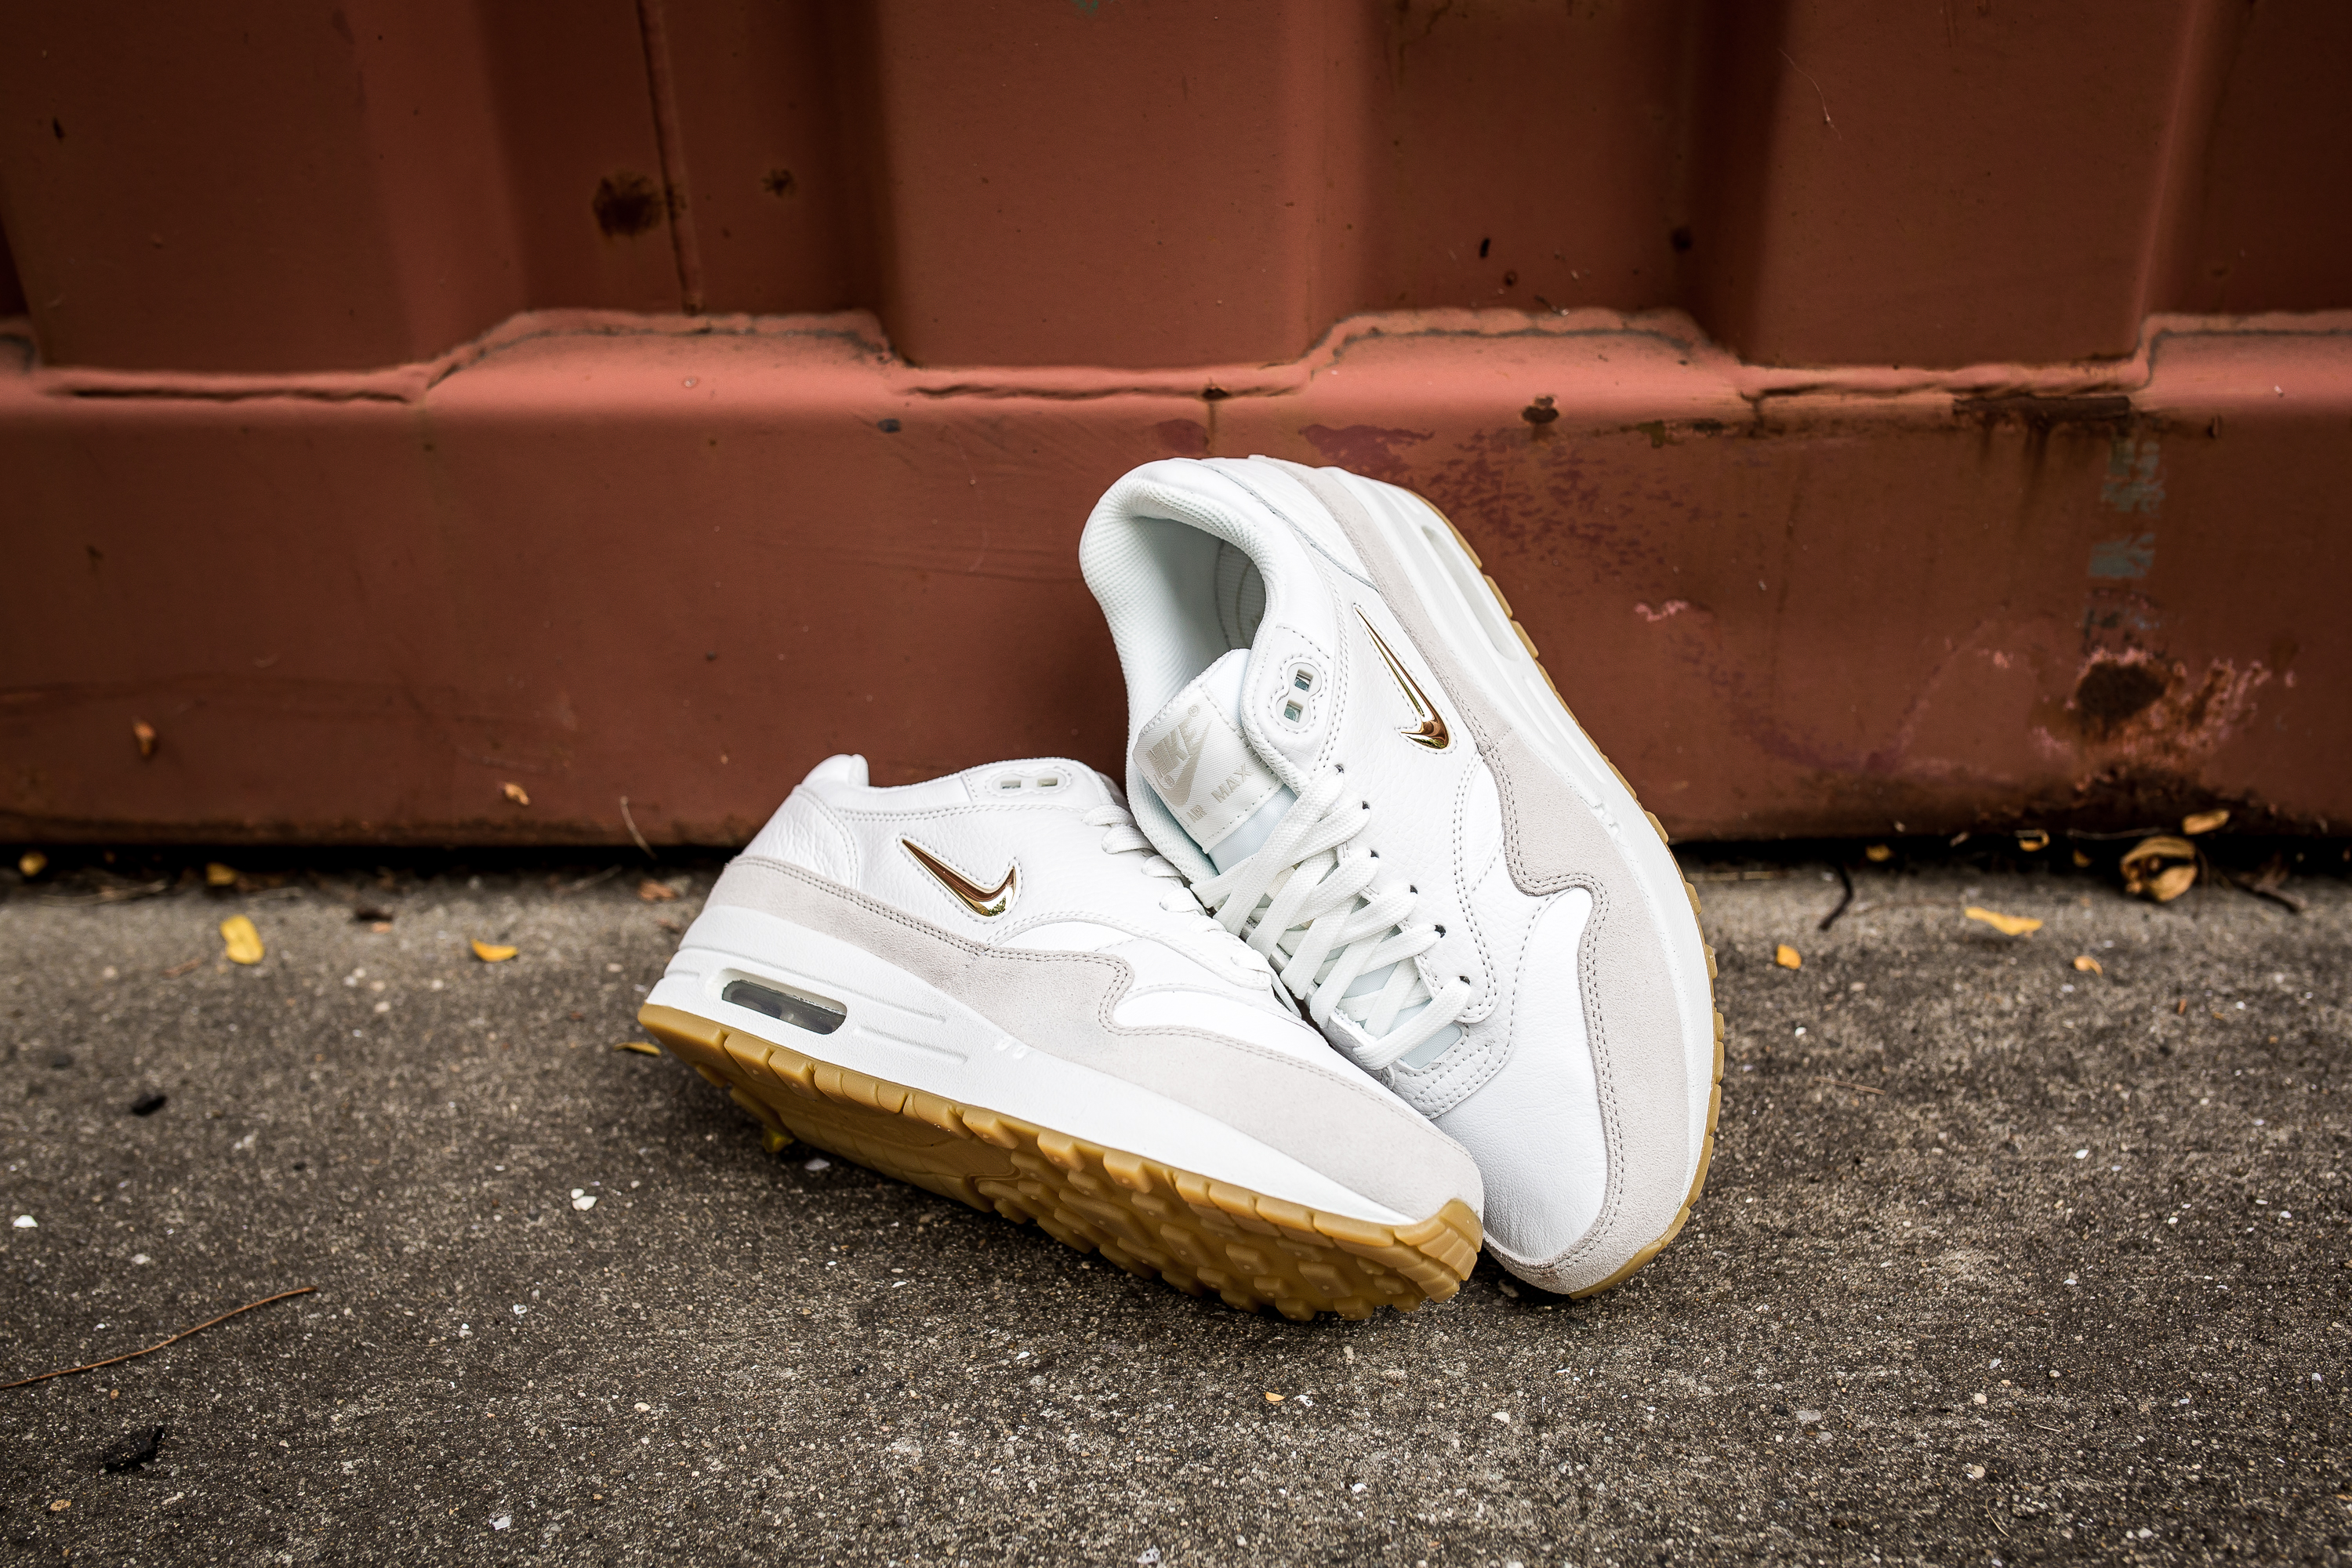 Nike WMNS Air Max 1 Premium SC Jewel Summit White